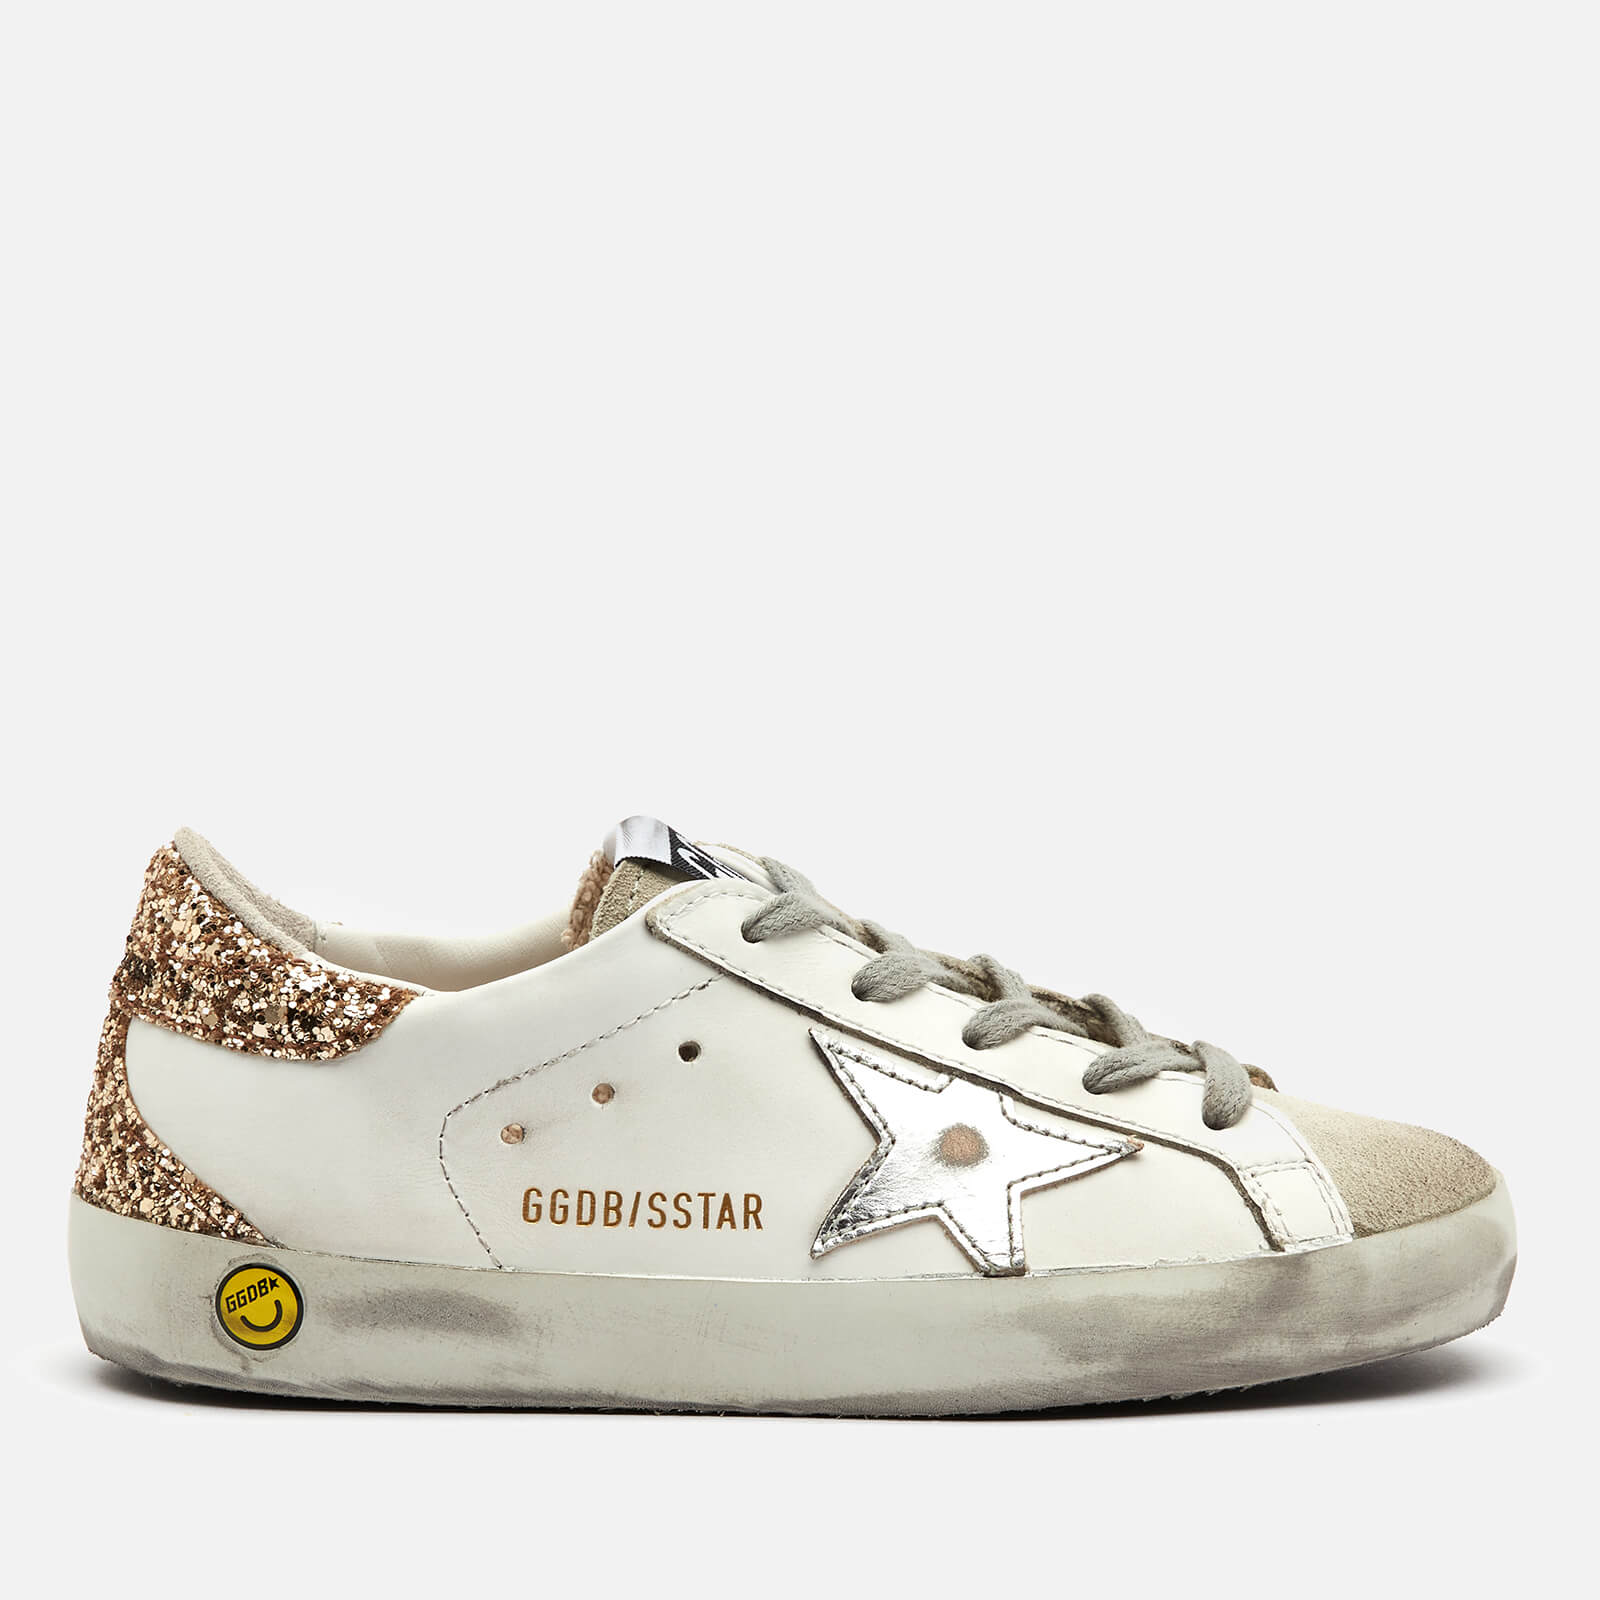 Golden Goose Deluxe Brand Kids' Super Star Leather Trainers - White/Ice/Silver/Gold - UK 13 Kids